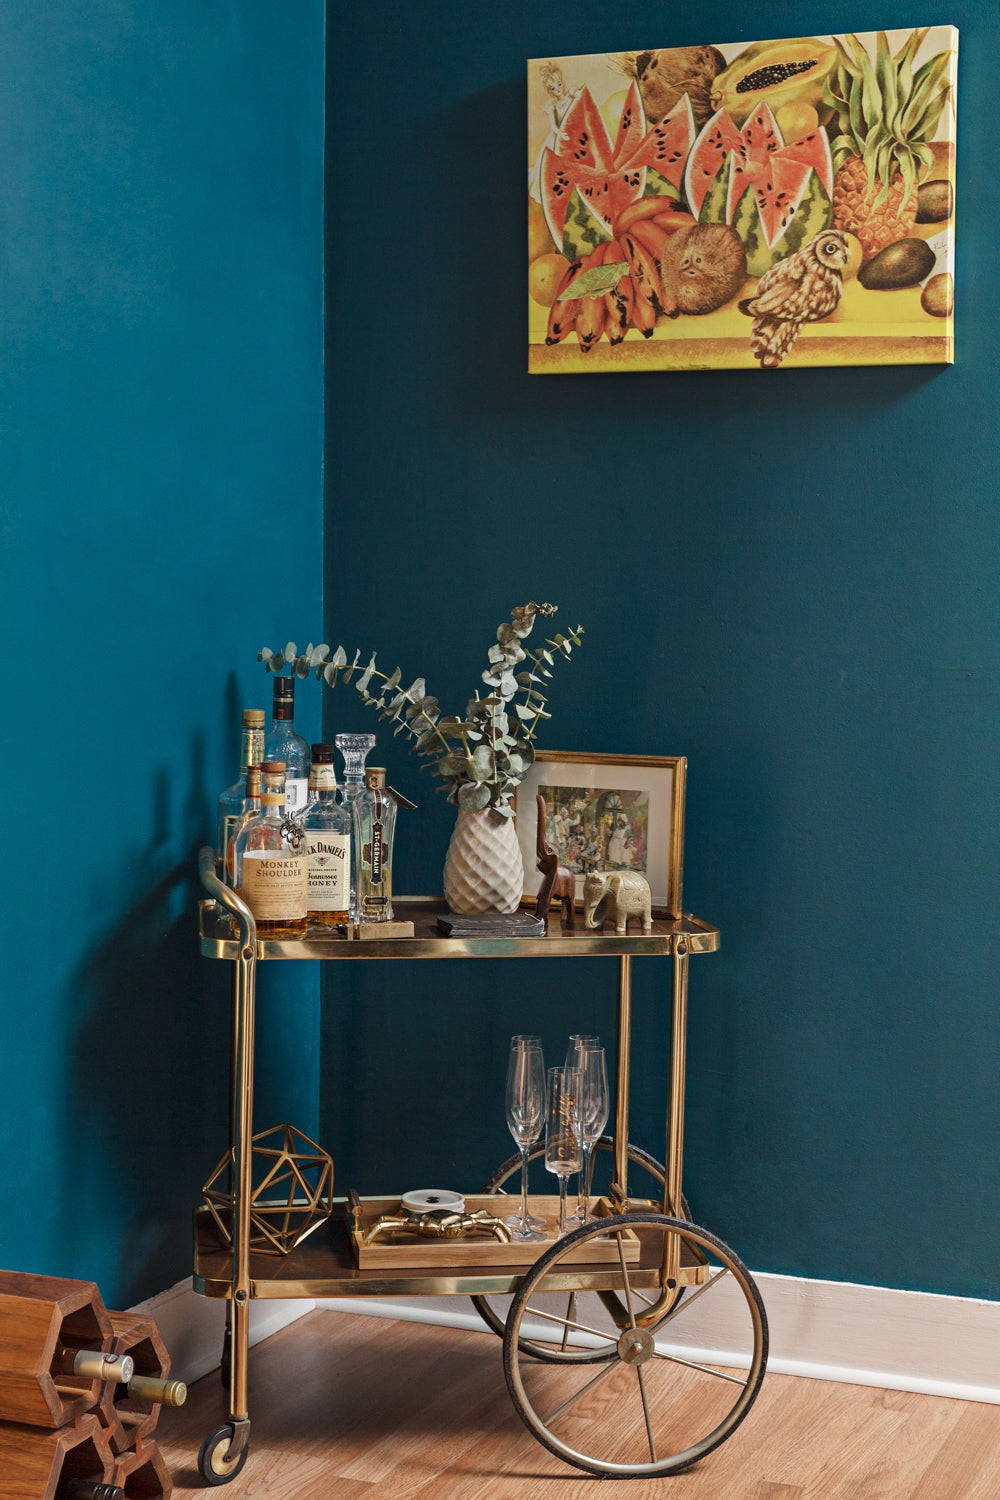 How Much It Would Cost to Paint Your House the First New Blue in 200 Years